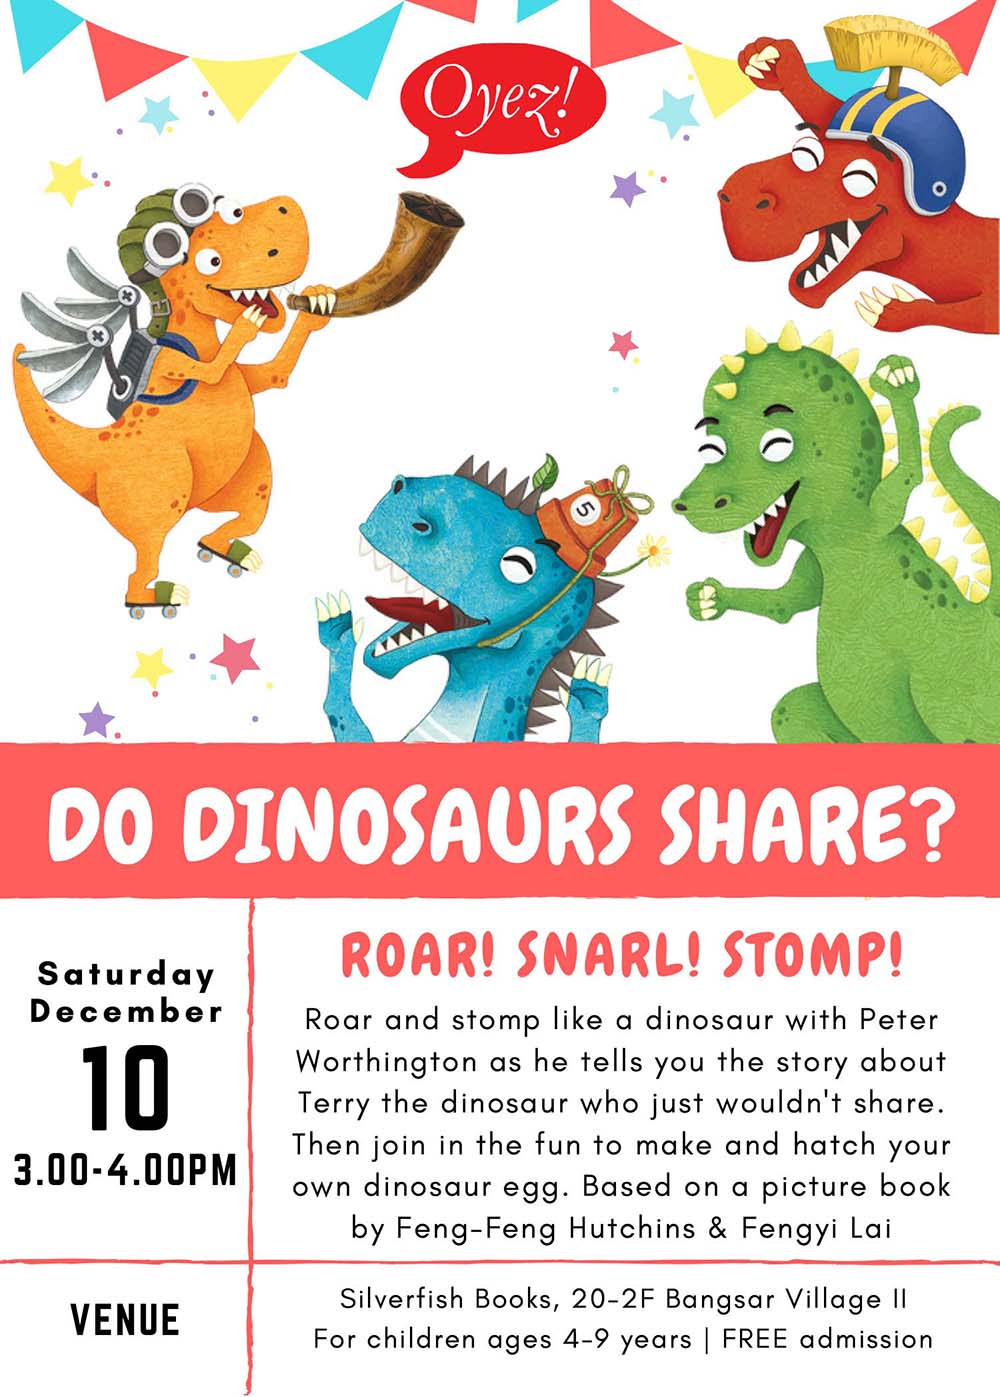 Do Dinosaurs Share? - storytime based on children's picture book by Feng-Feng Hutchins, illustrated by Fengyi Lai